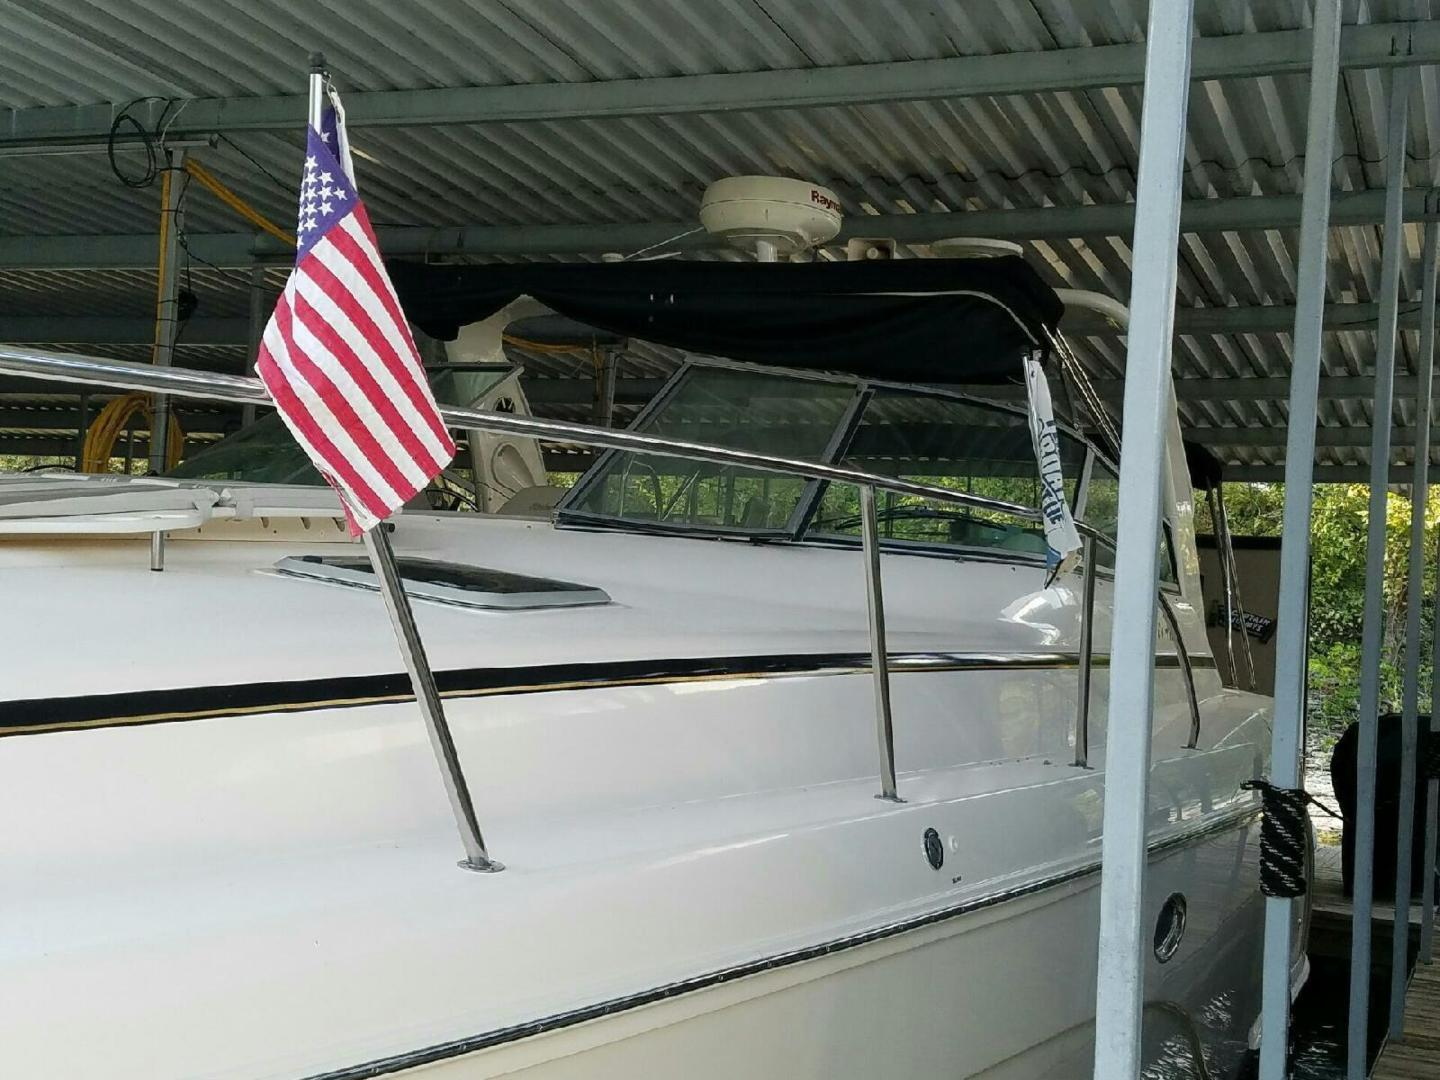 Rinker-410 Express Cruiser 2004 -Herrington Lake-Kentucky-United States-466197 | Thumbnail